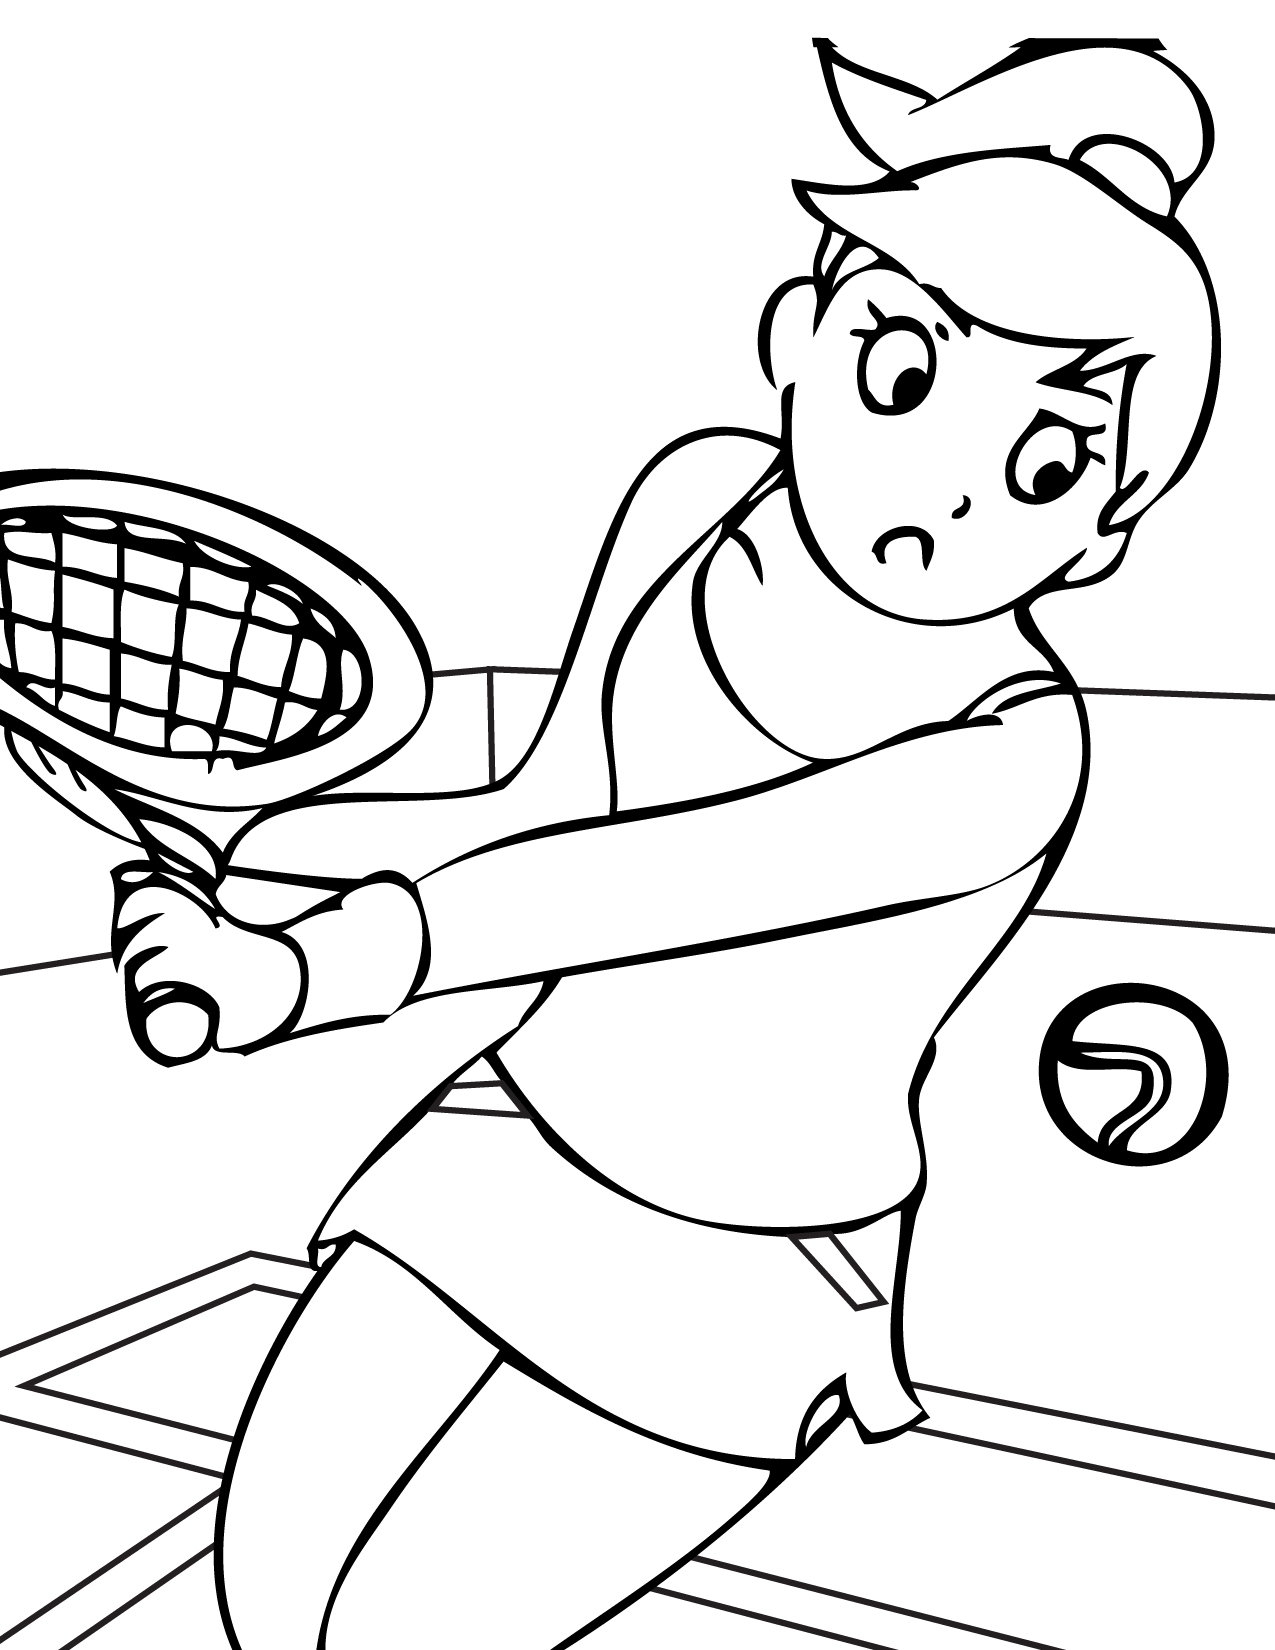 video sport 800 coloring pages - photo#21